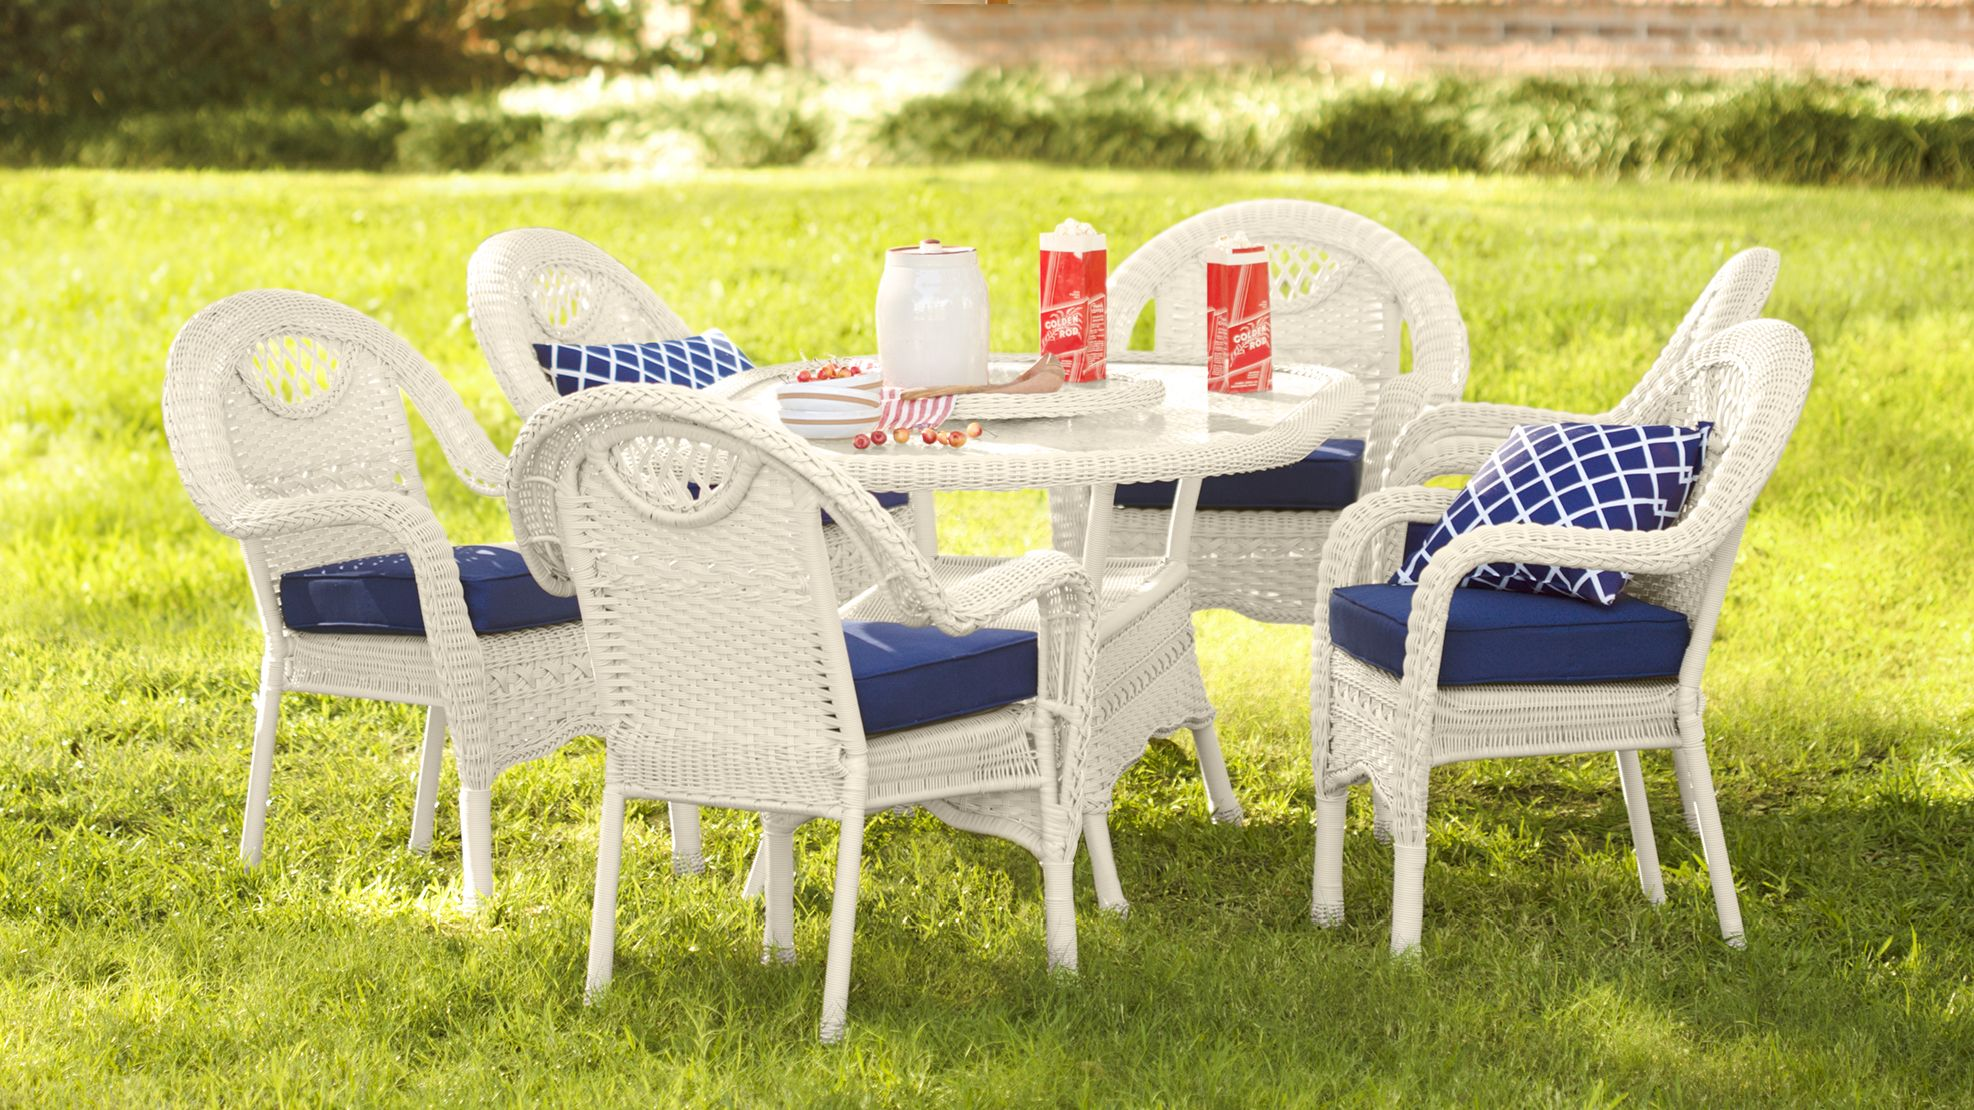 Oval Outdoor Wicker Dining Table And Six Chairs Prospect Hill Collection Accessories Wicker Dining Chairs Wicker Dining Tables Outdoor Wicker